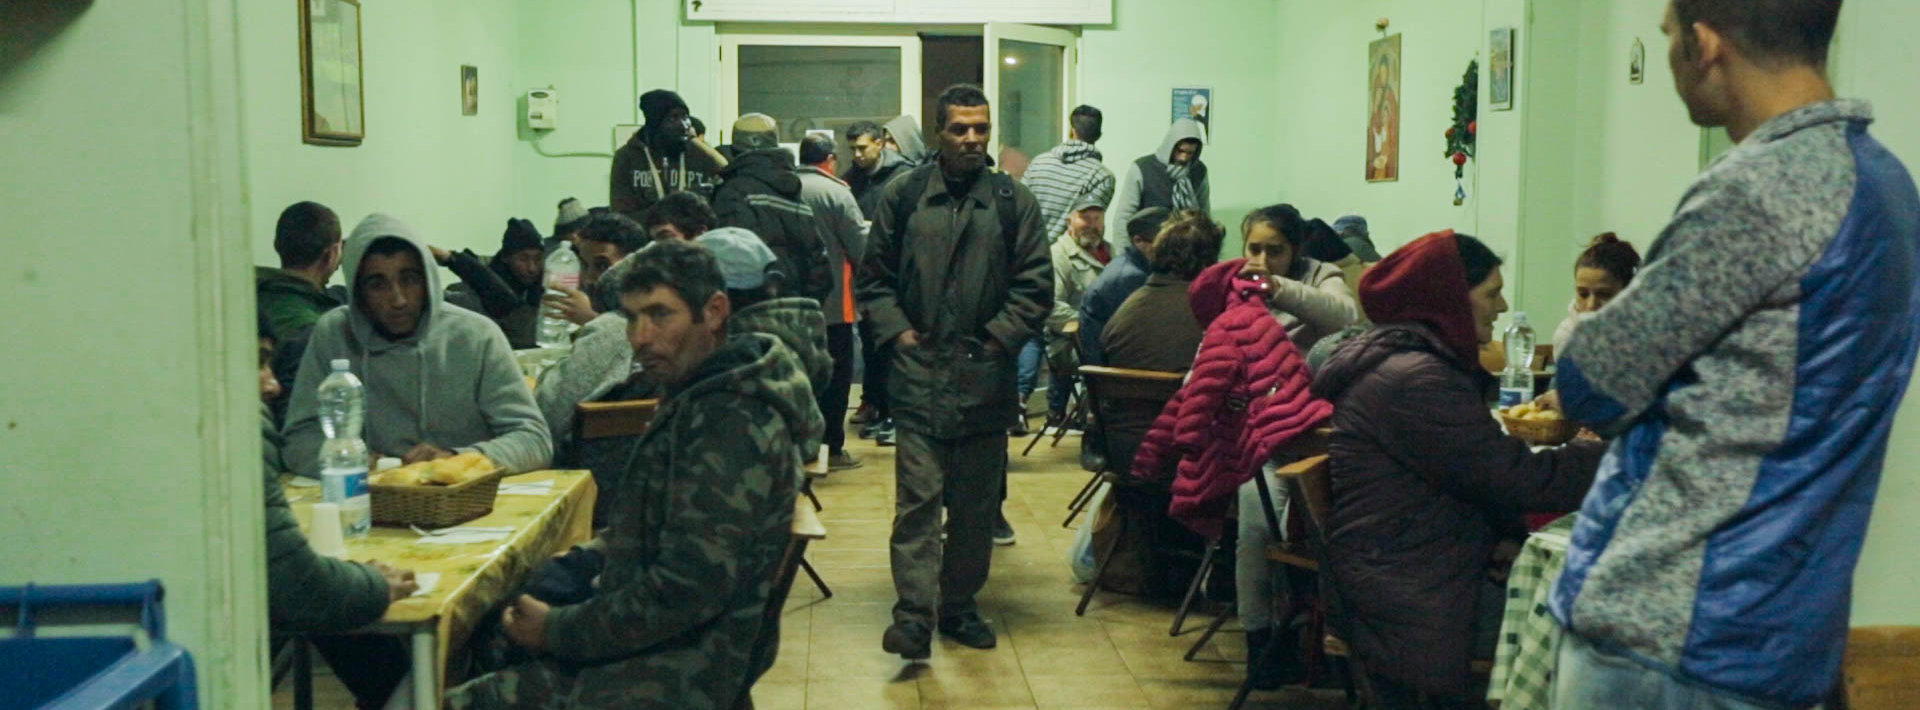 Refugee Soup Kitchen, Italy.jpg